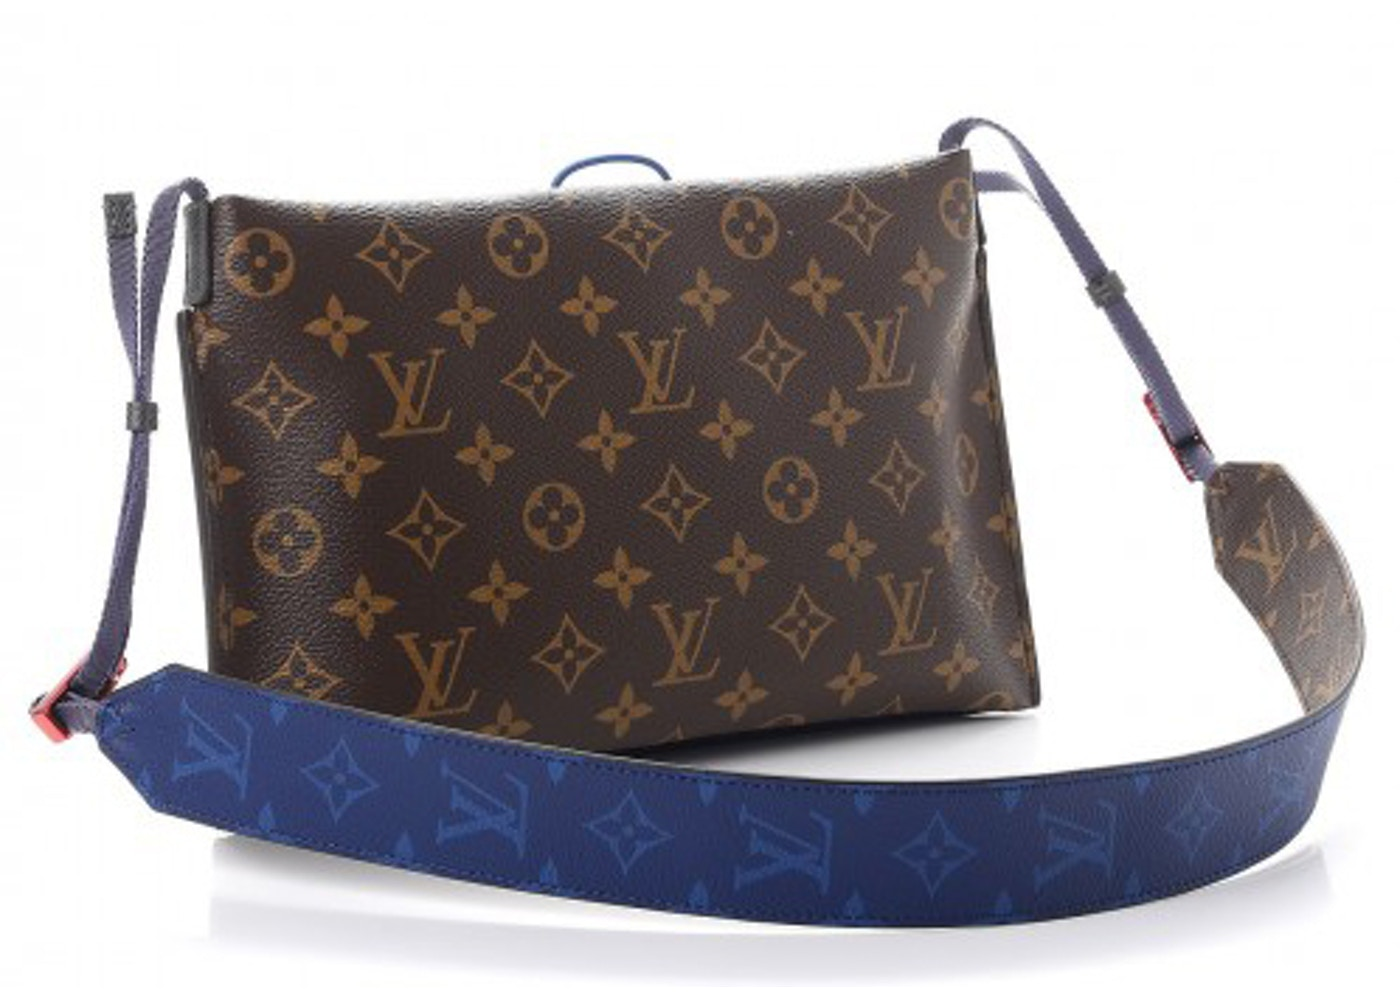 b65db7183c3 Louis Vuitton Pouch Outdoor Monogram Pacific Small Brown/Blue